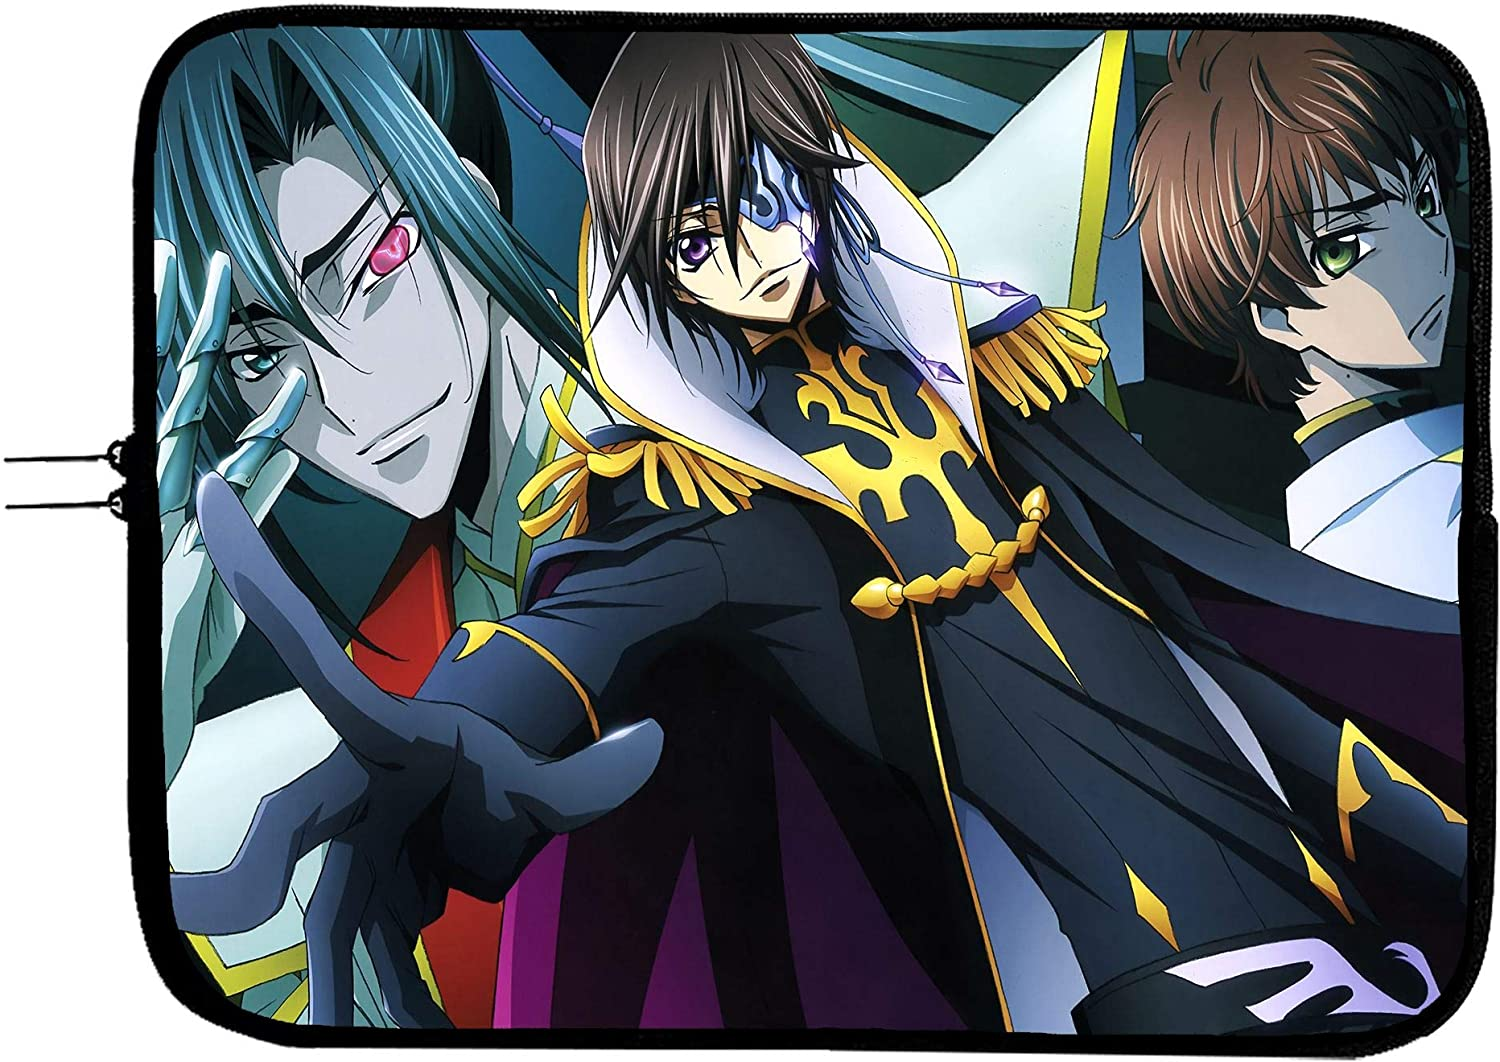 Code Geass Anime Laptop Sleeve Bag 15 Inch Notebook Case Anime Mousepad Surface MacBook Pro/MacBook Air Surface Pro Laptop/Tablet Water Repellent Neoprene Cushioned Case